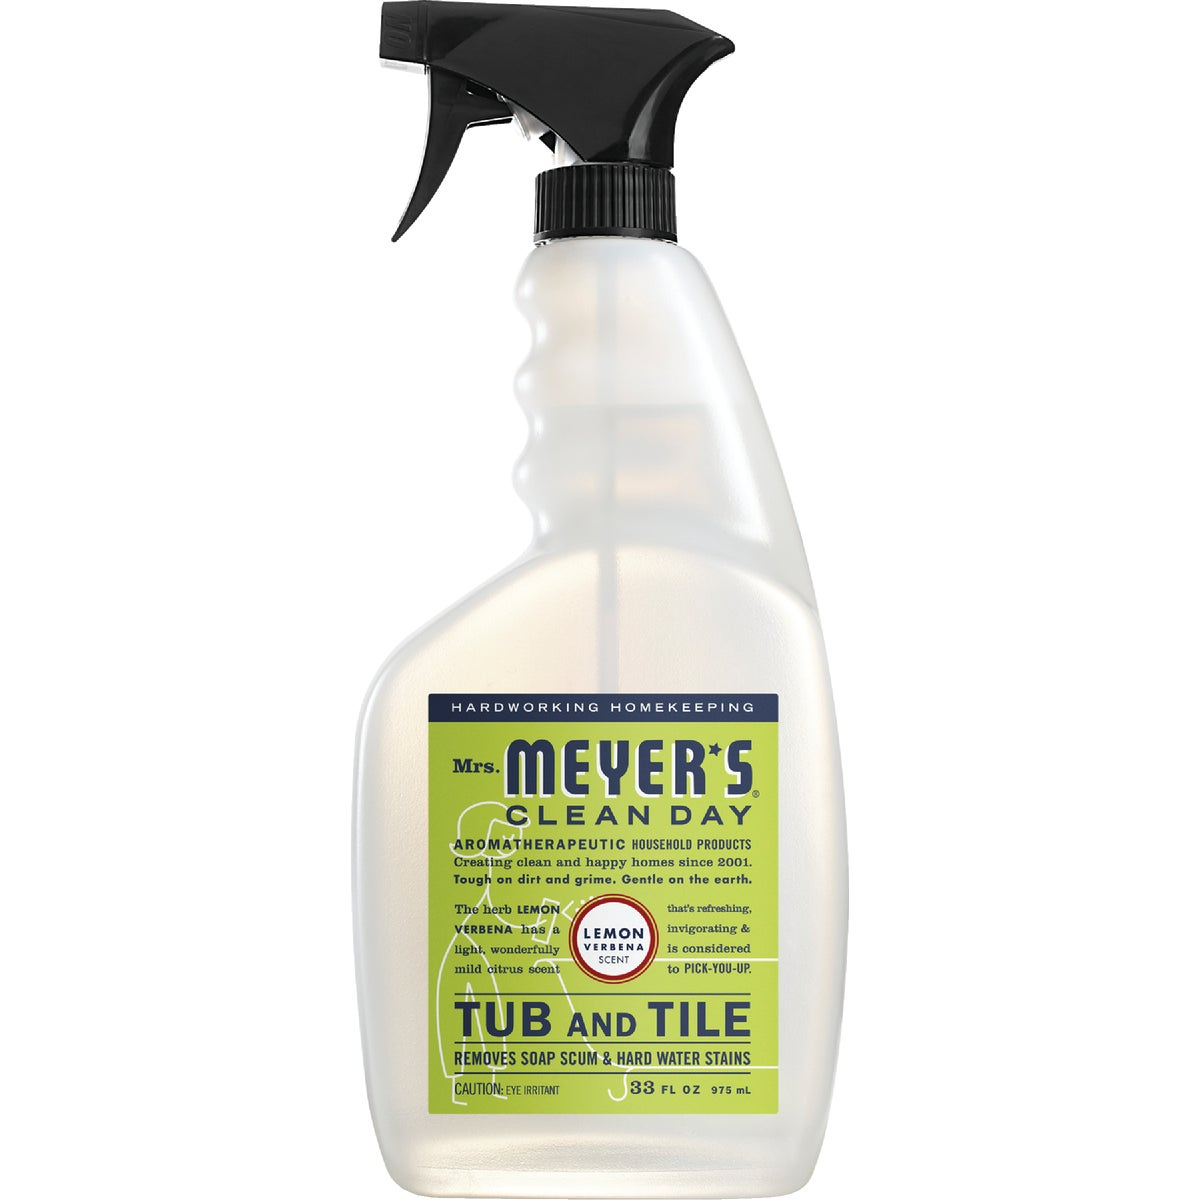 Mrs. Meyer's Clean Day Tub and Tile Bathroom Cleaner, 12168